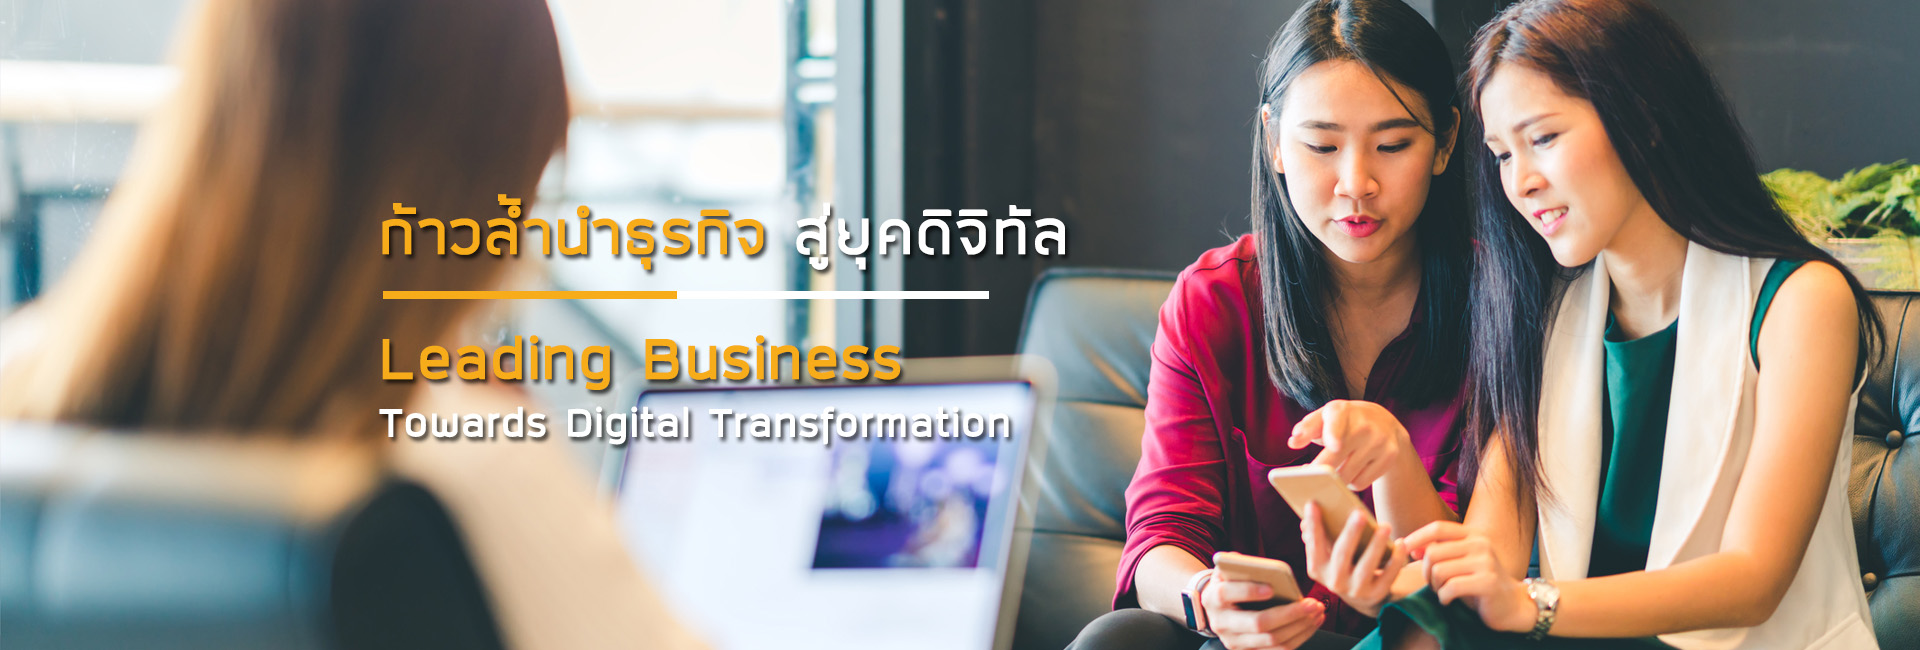 Leading Business Towards Digital Transformation